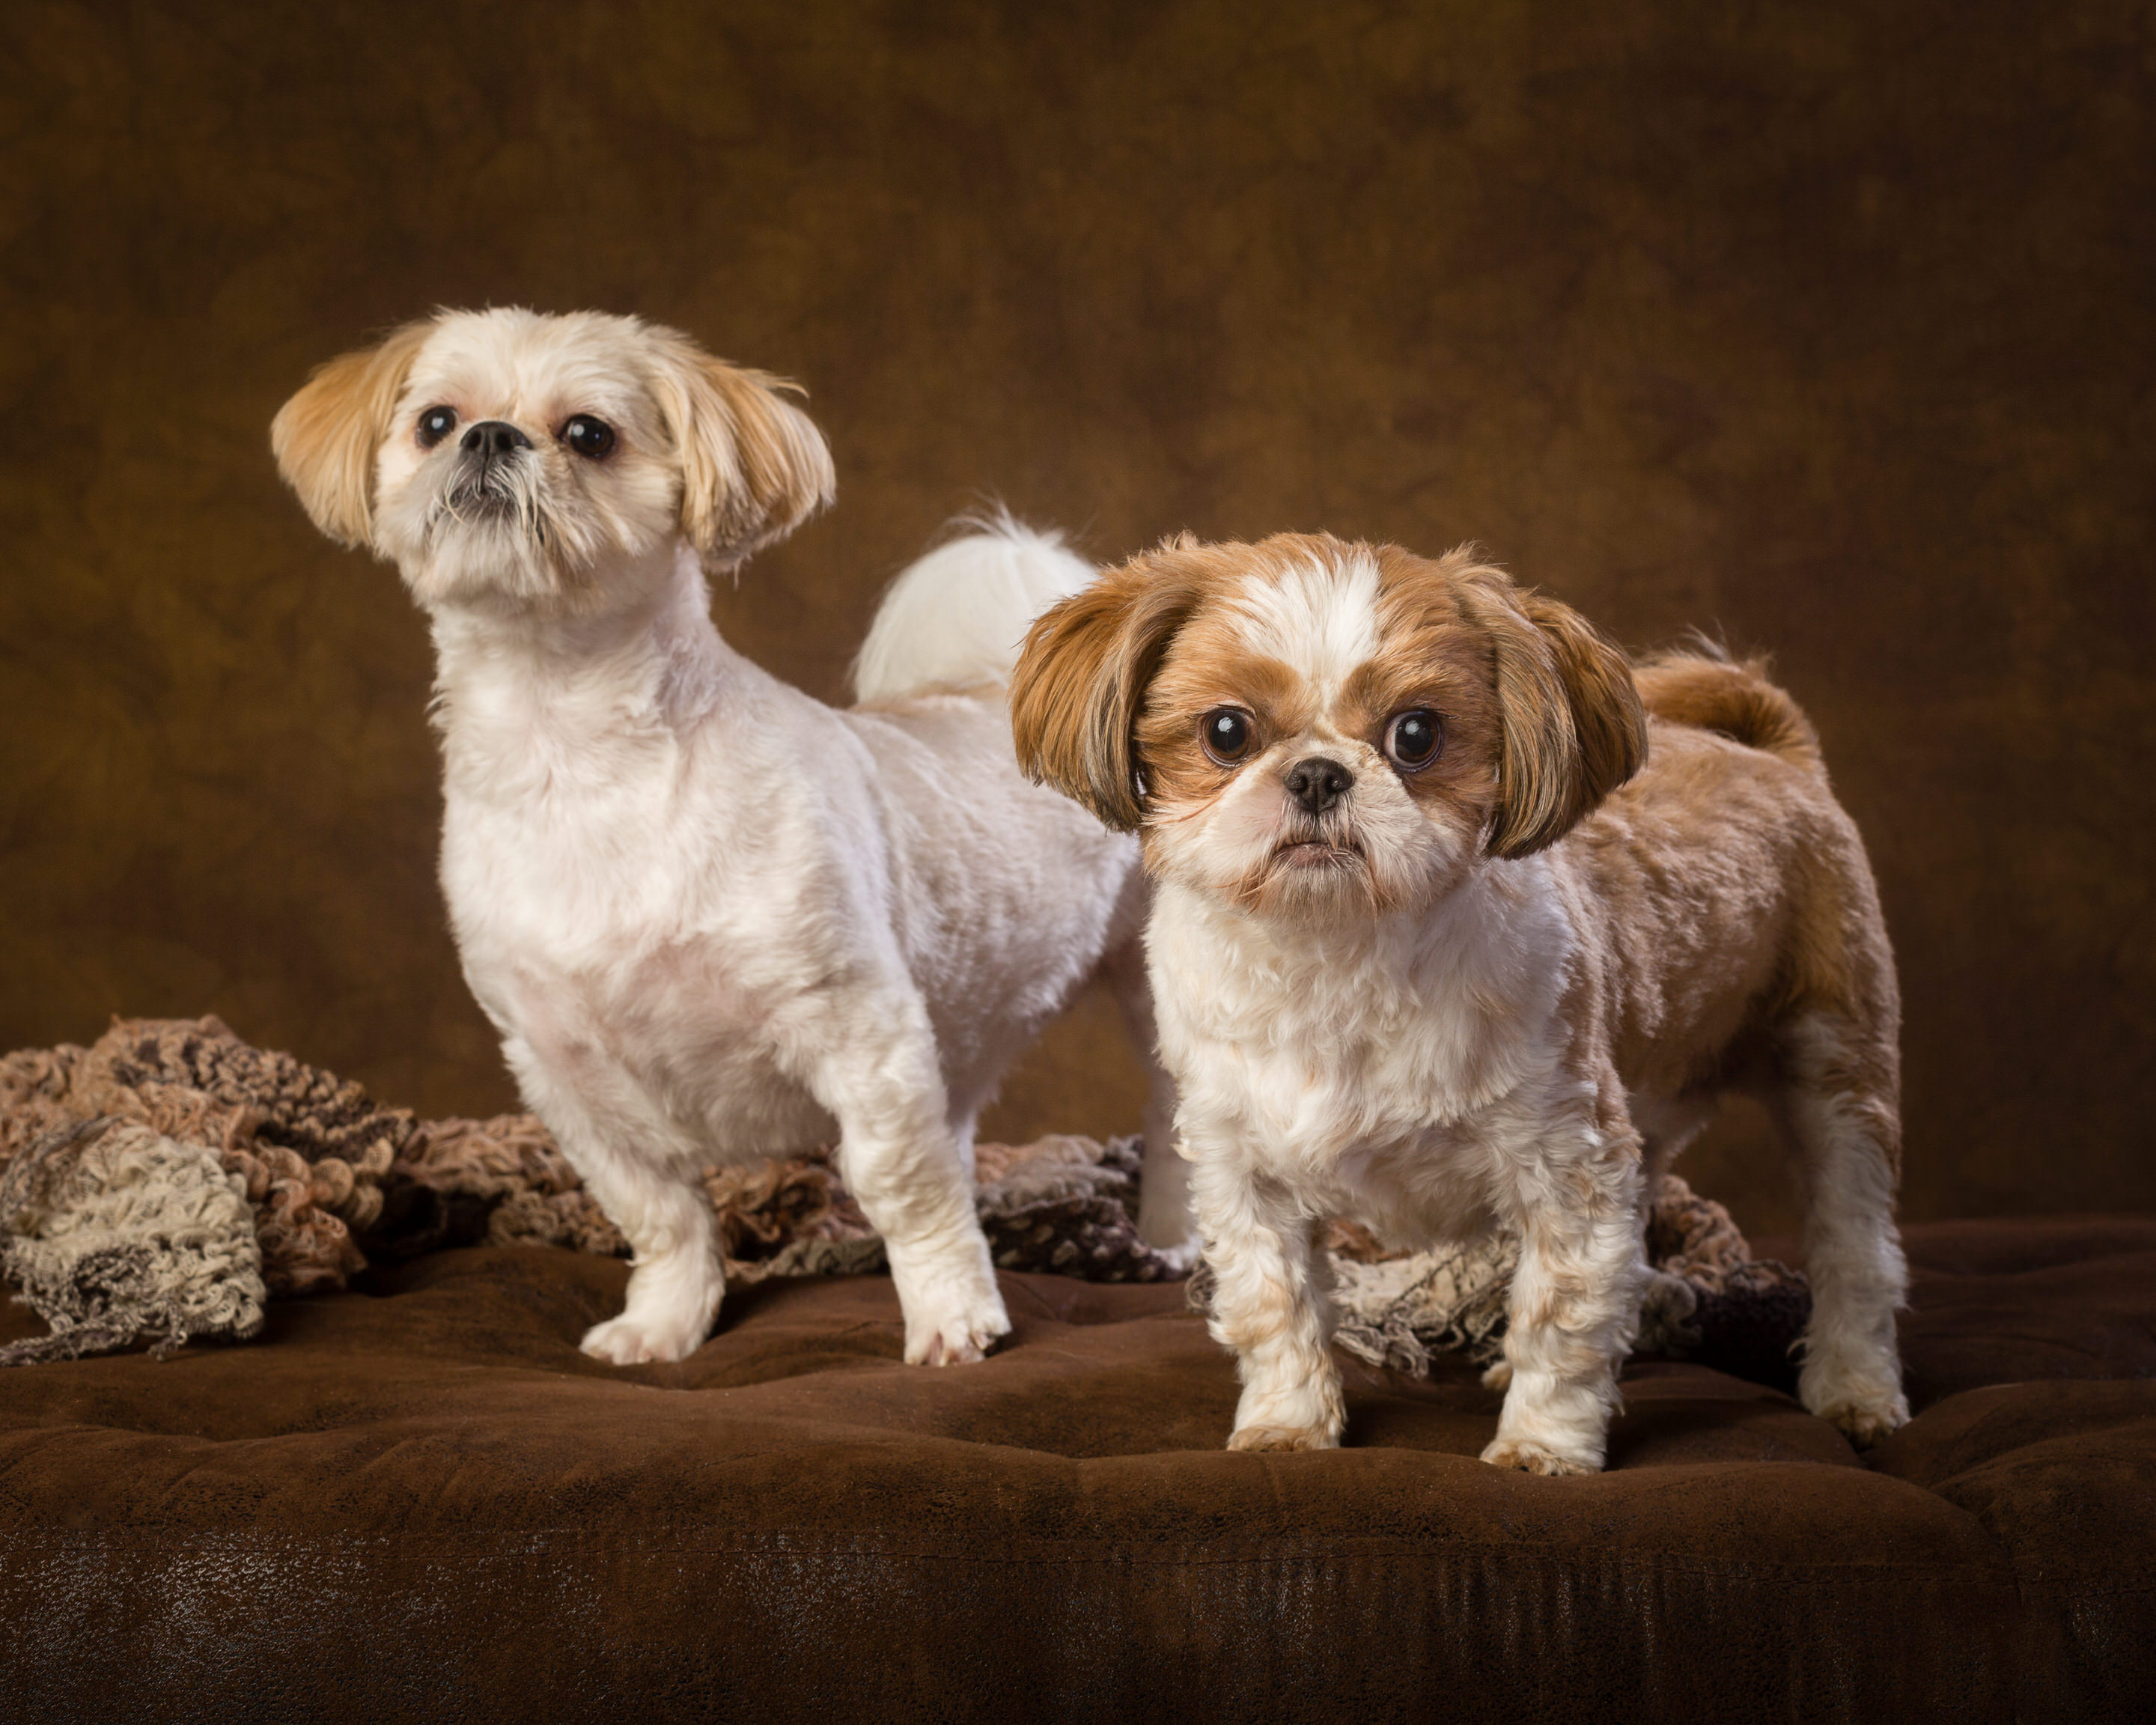 How cute are these two Shitzu dogs!